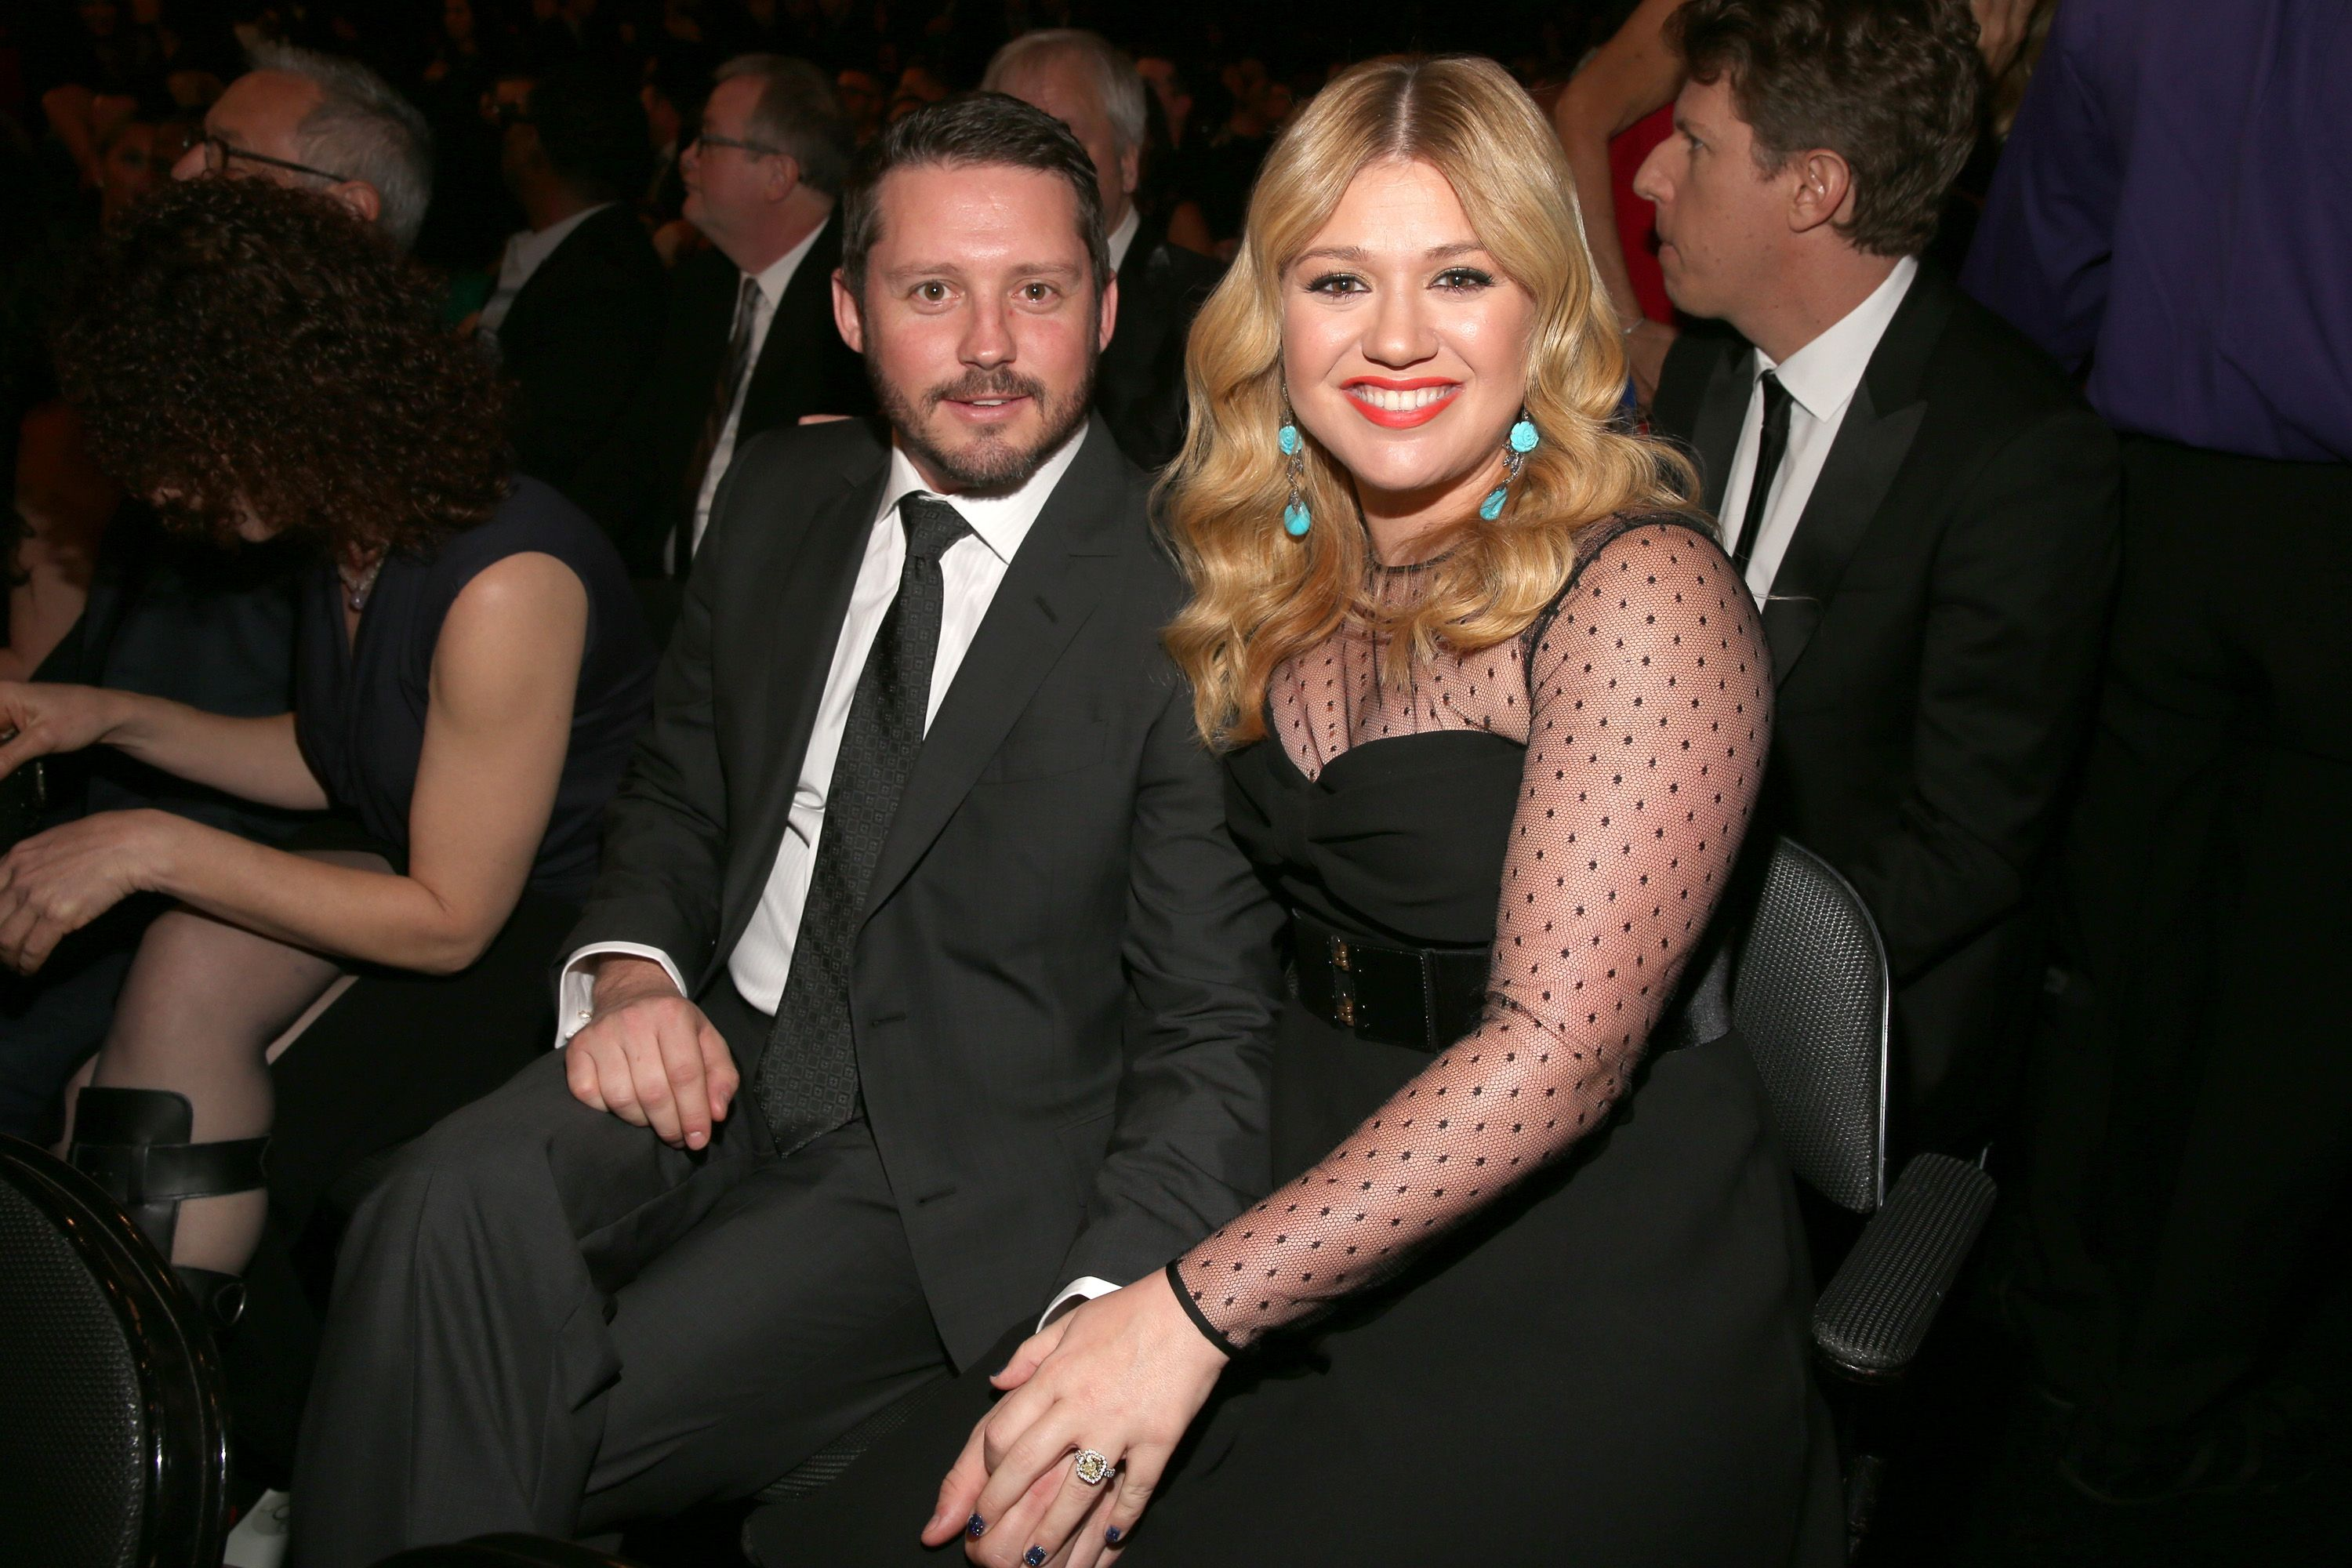 singer-kelly-clarkson-and-brandon-blackstock-attend-the-news-photo-161408450-1556555291.jpg